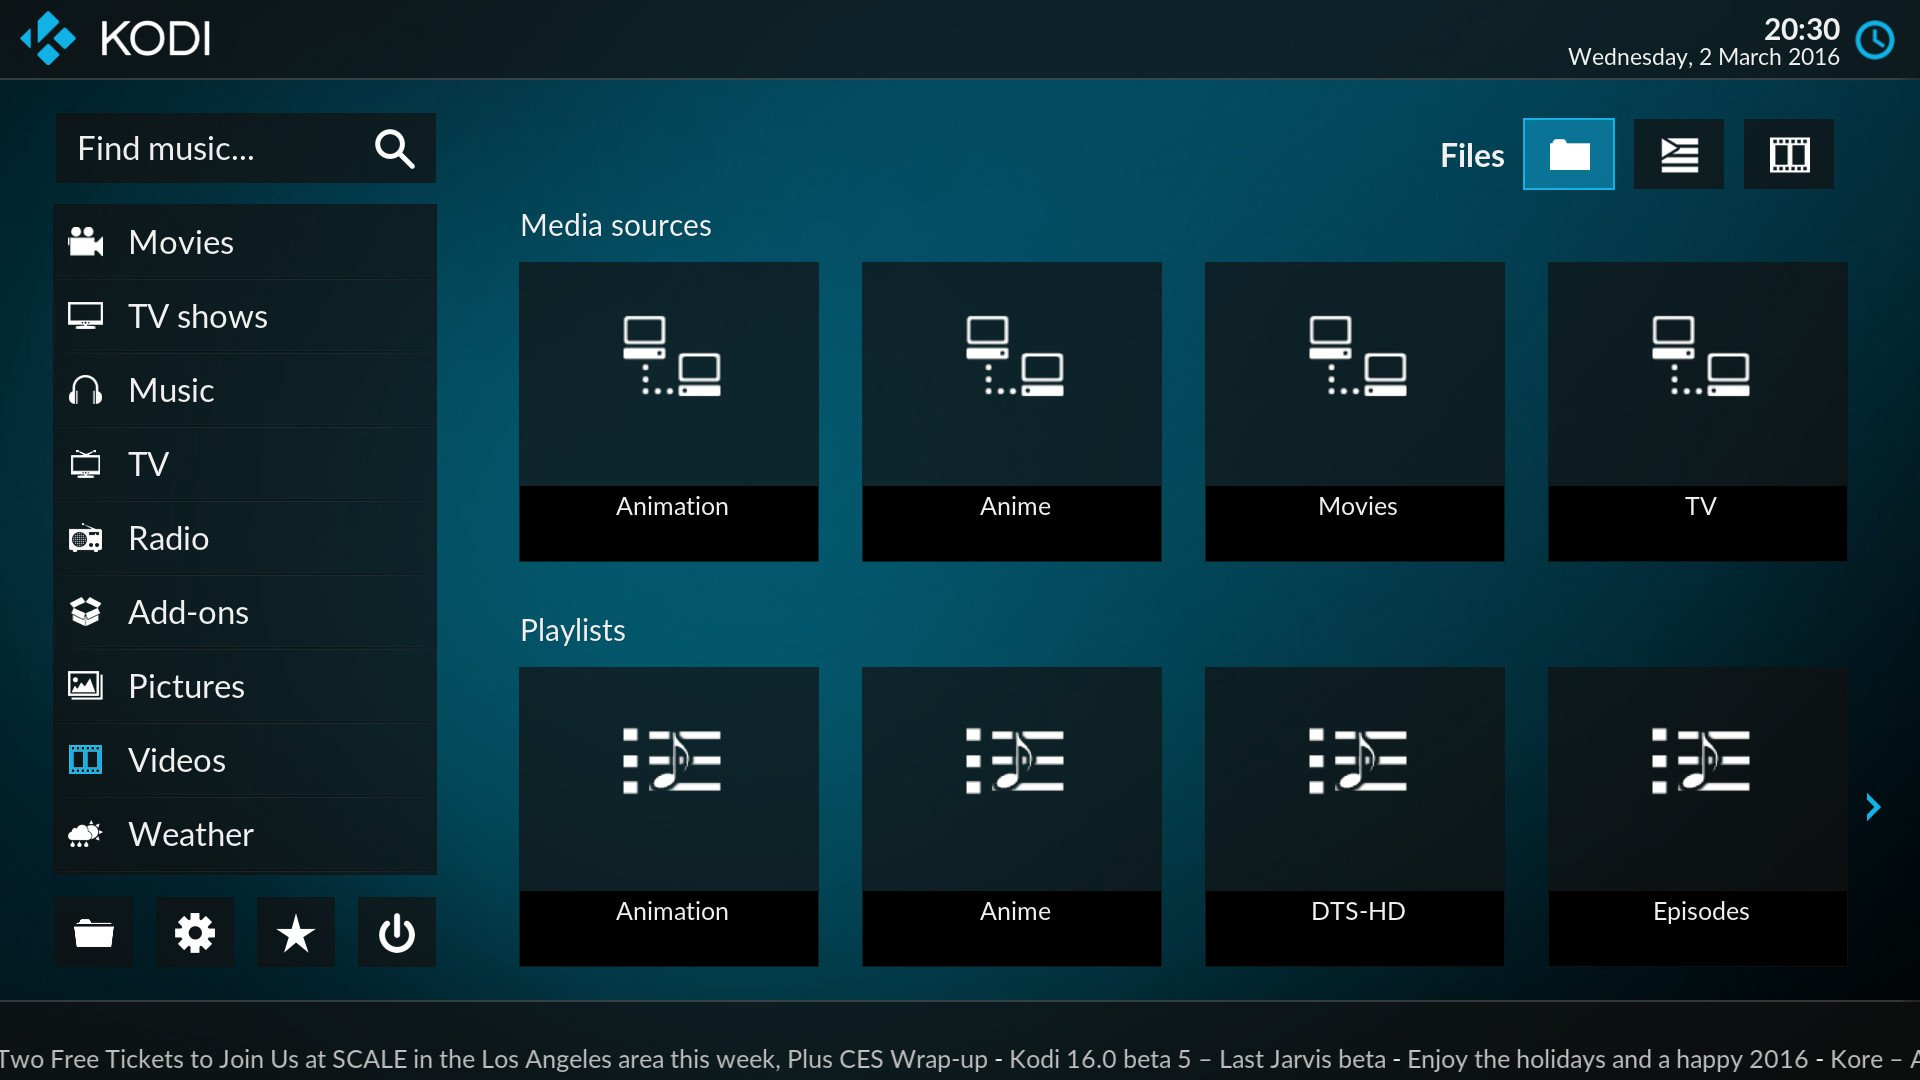 Kodi Media Center Is Getting A New Look In Version 17 ...